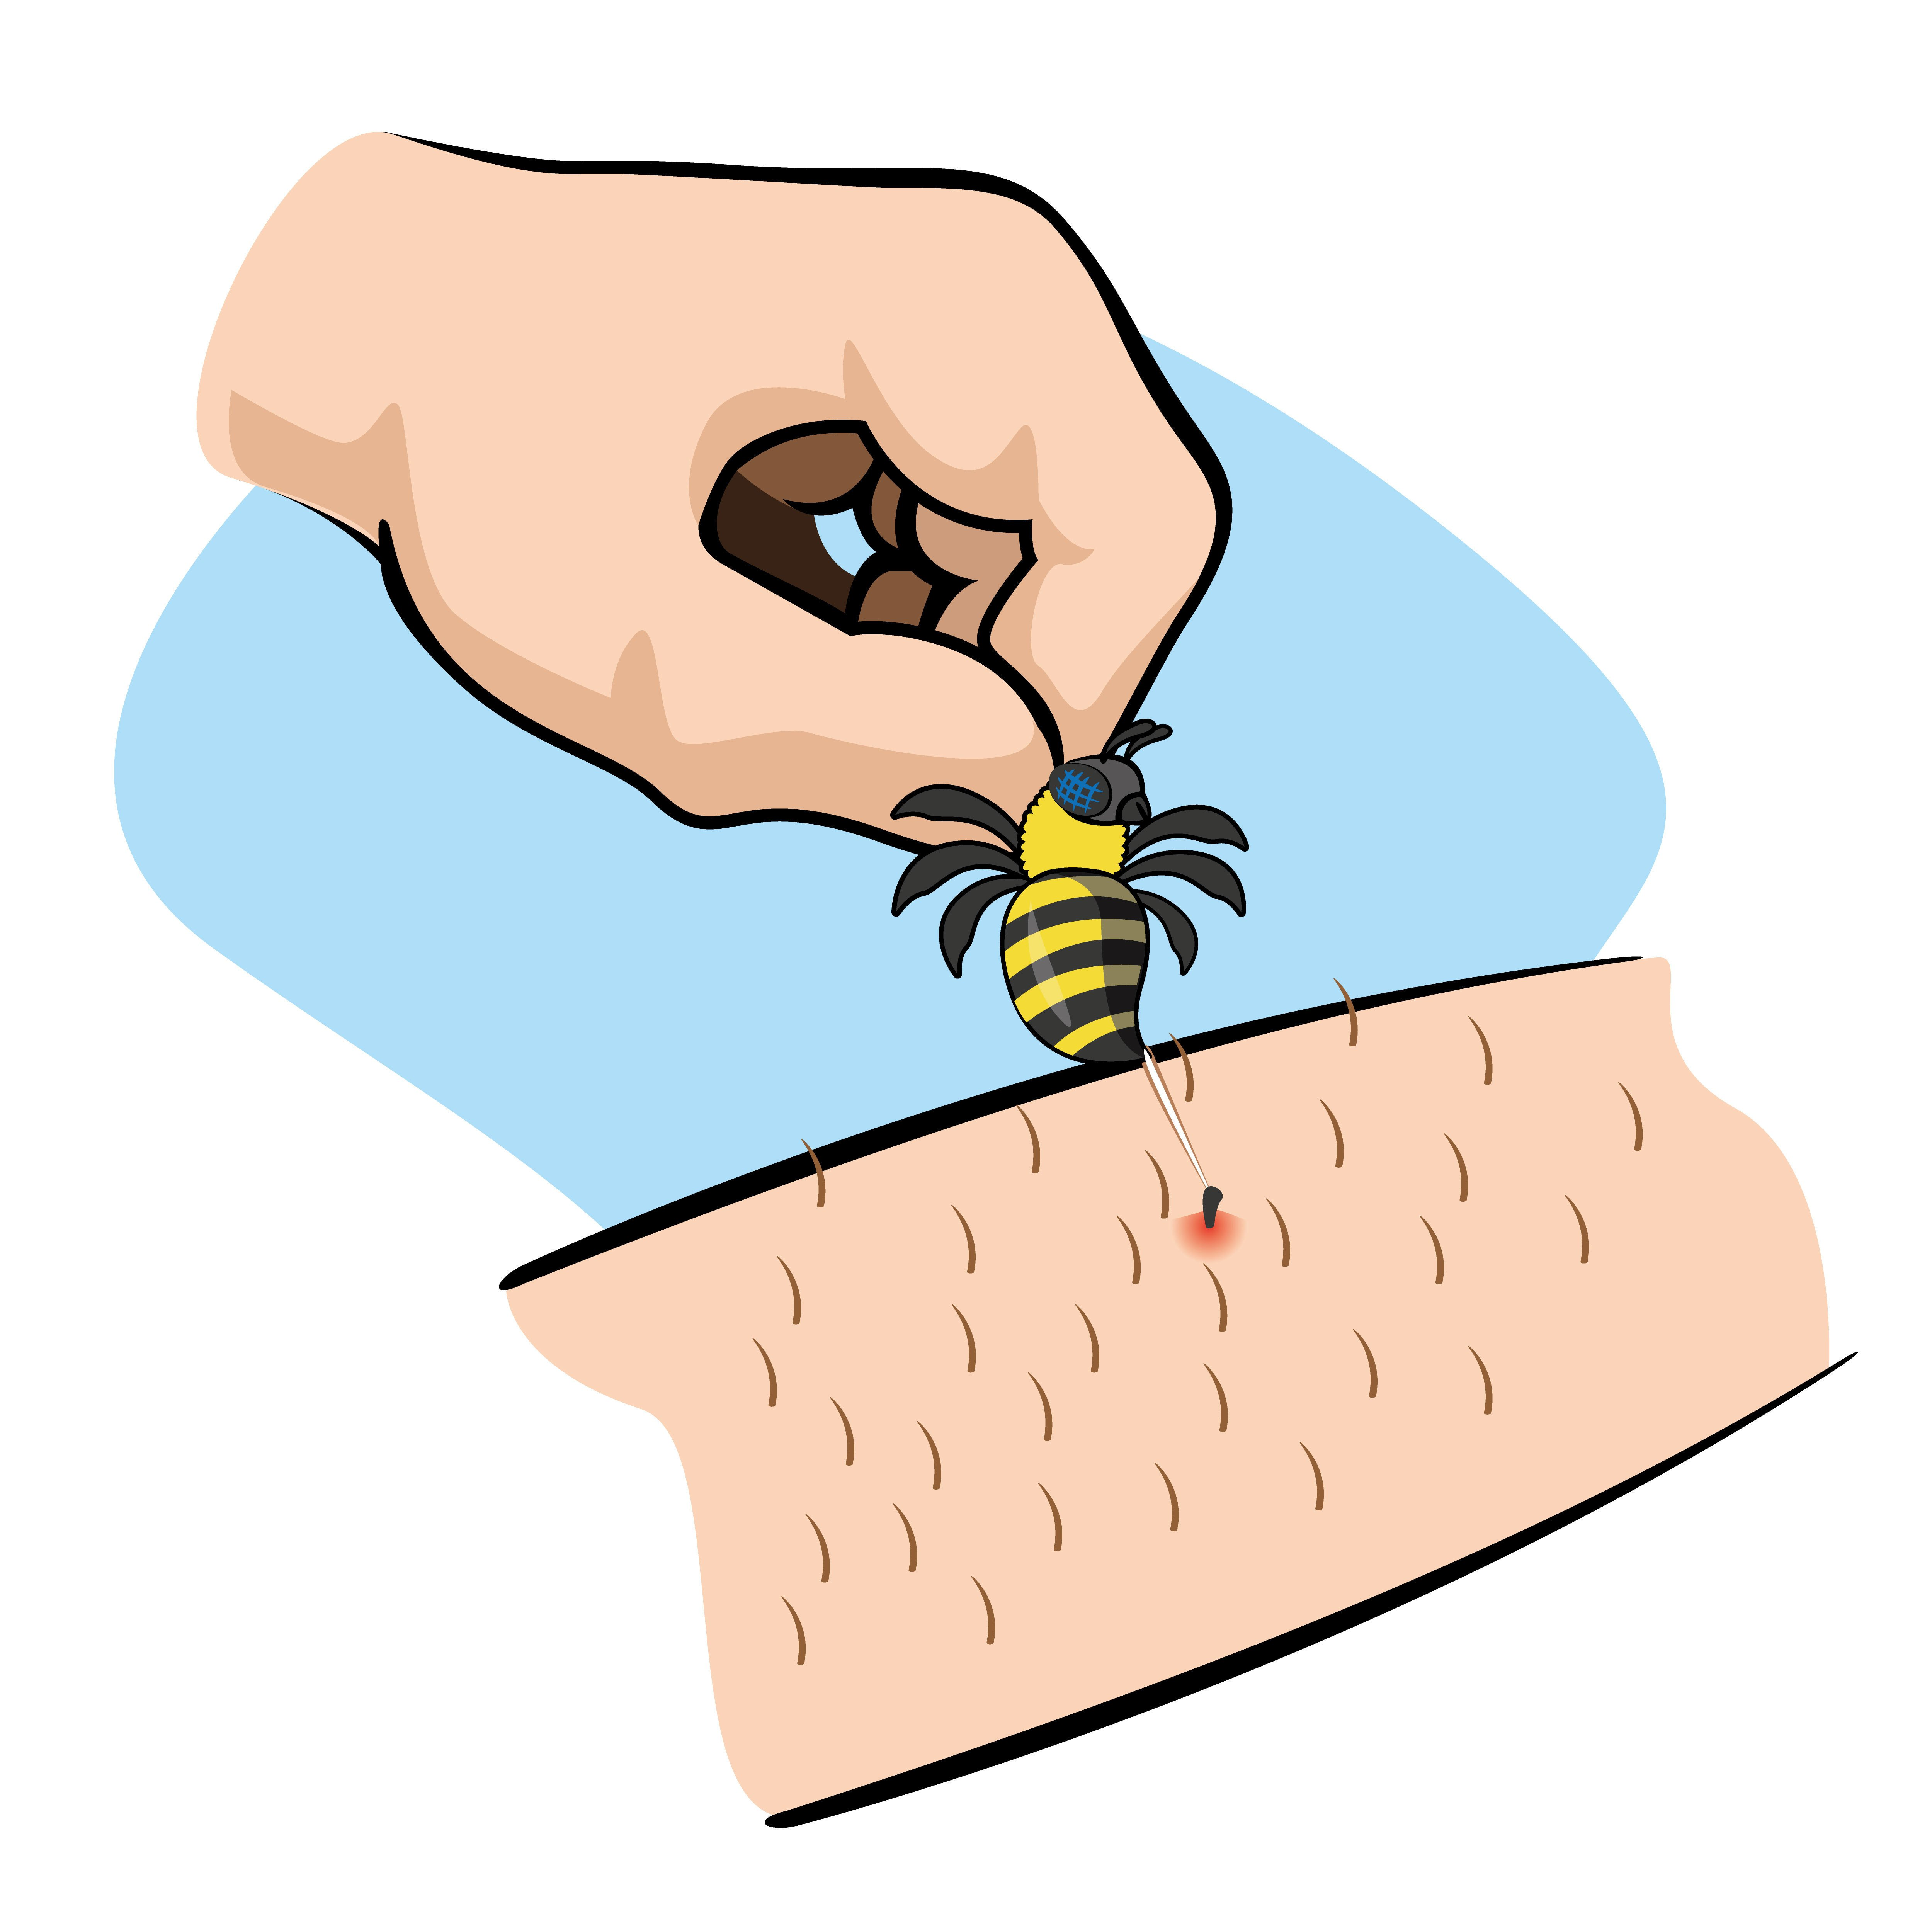 Wondrous How To Treat A Bee Sting Fast And Safely A Complete Guide Interior Design Ideas Tzicisoteloinfo